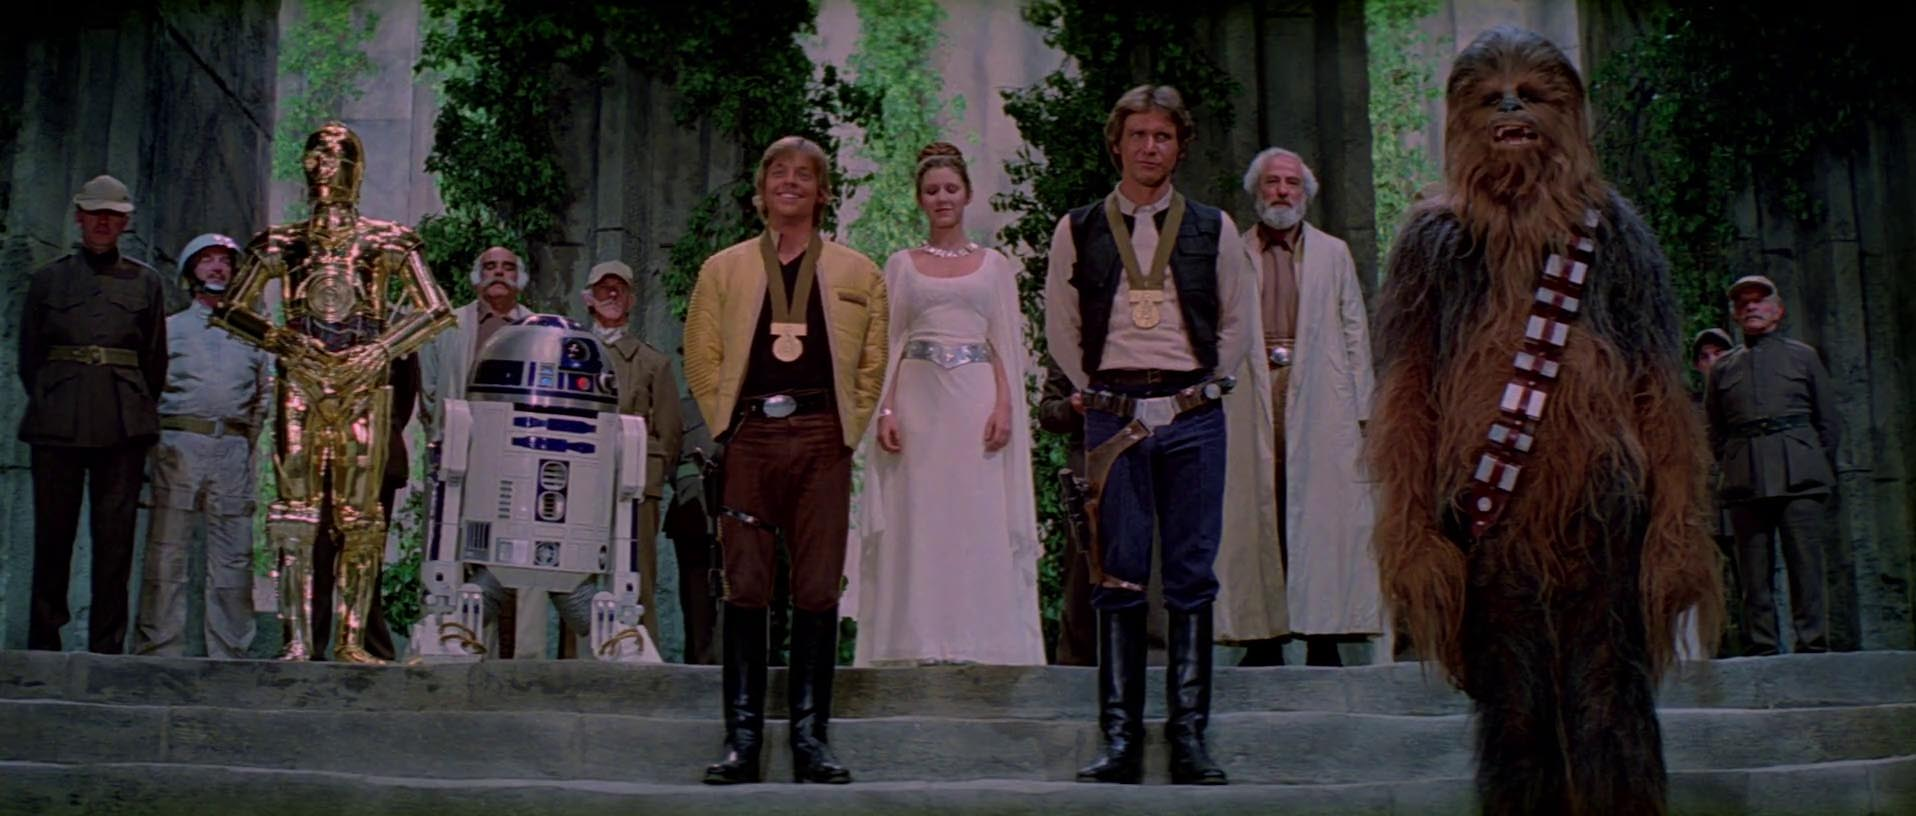 Can you give me a research question that would talk about the symbolism in star wars?